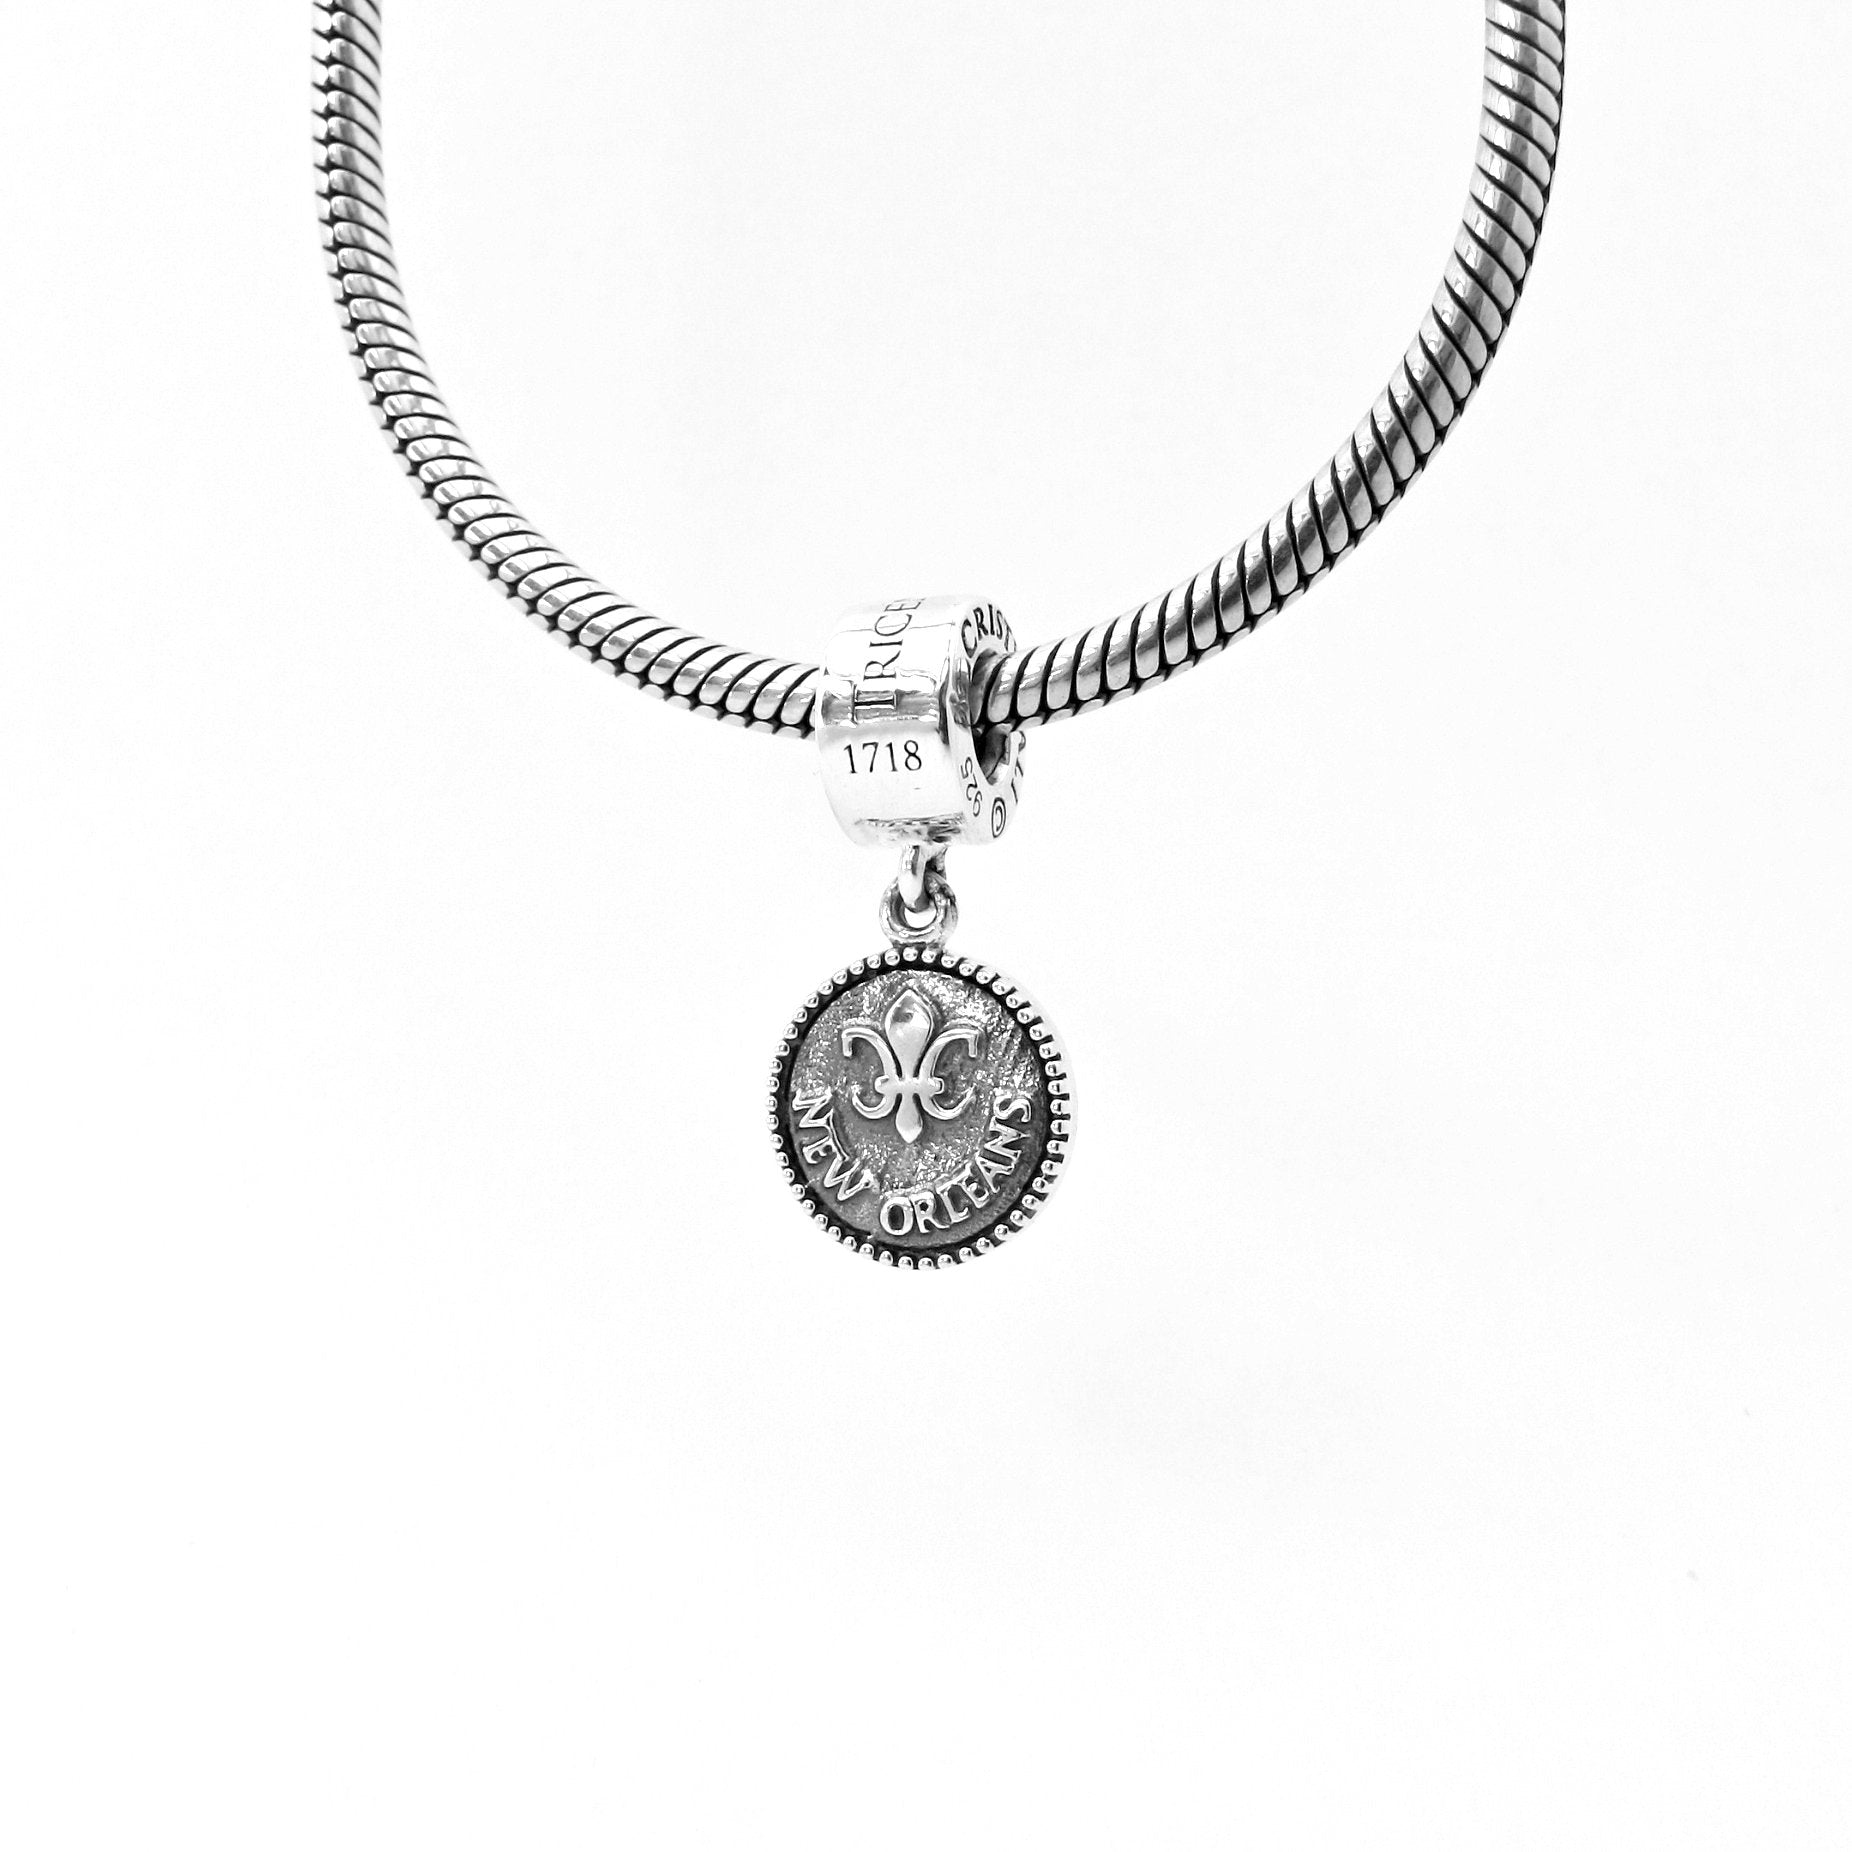 New Orleans Tricentennial Limited Collector's Edition Dangle Couture Charm - JULY PREORDER